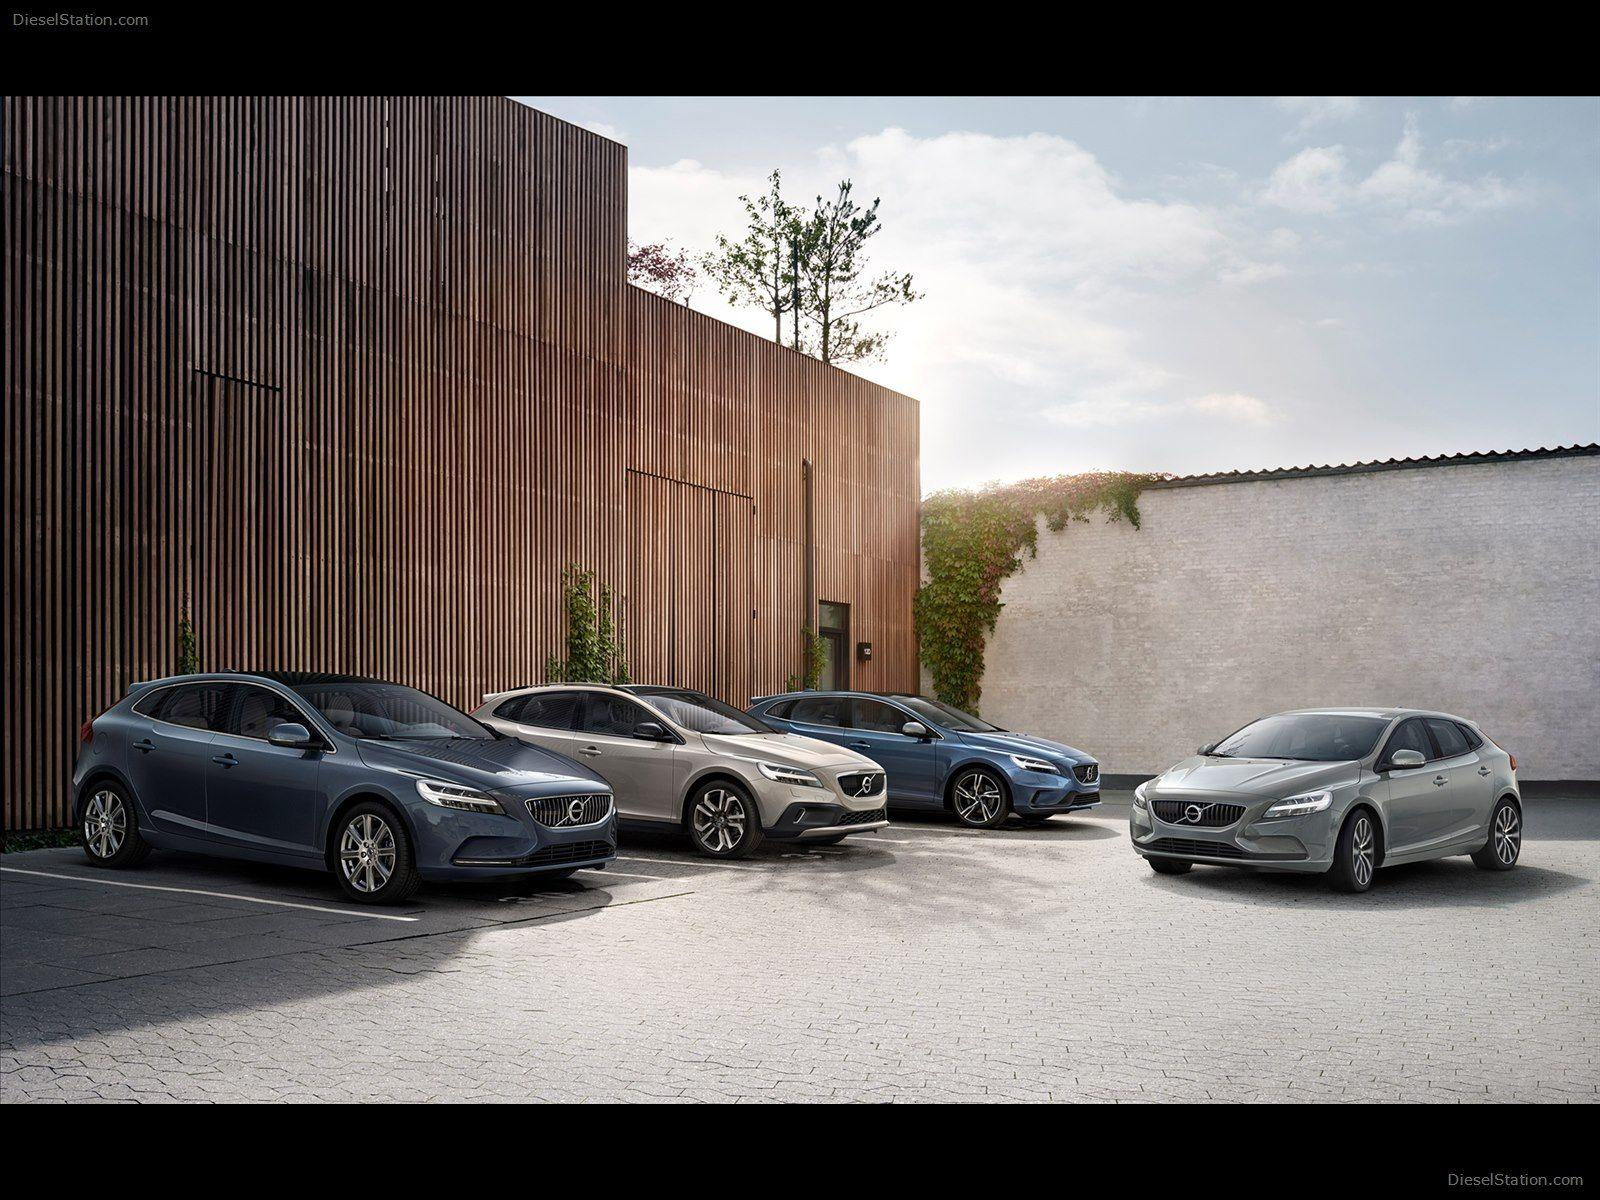 Volvo V40 Cross Country 2017 Exotic Car Wallpapers #02 of 8 : Diesel ...